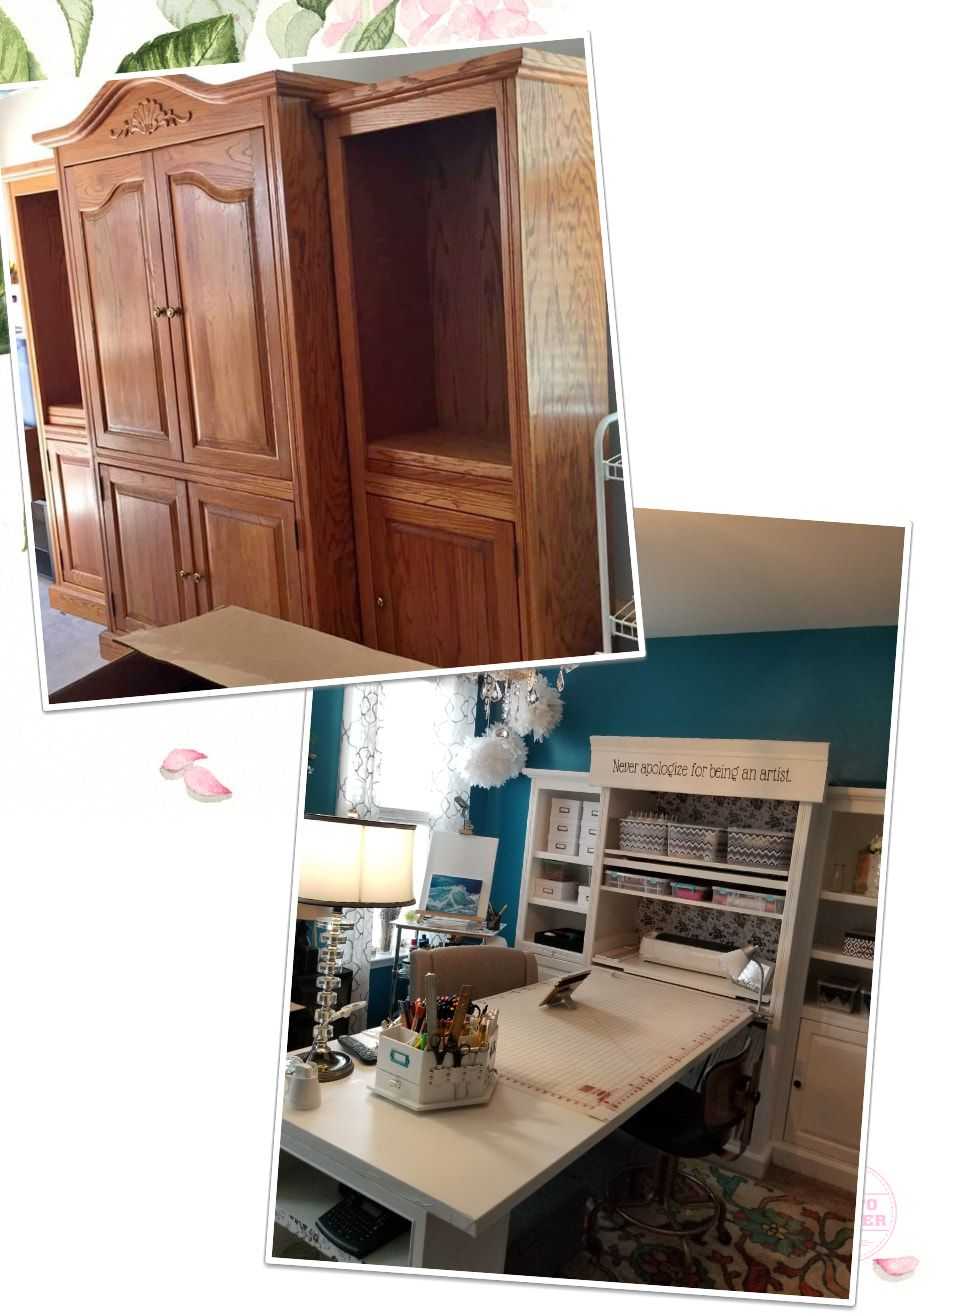 craft room makeover before after room makeover home decor makeover before and after on kitchen organization before and after id=79637